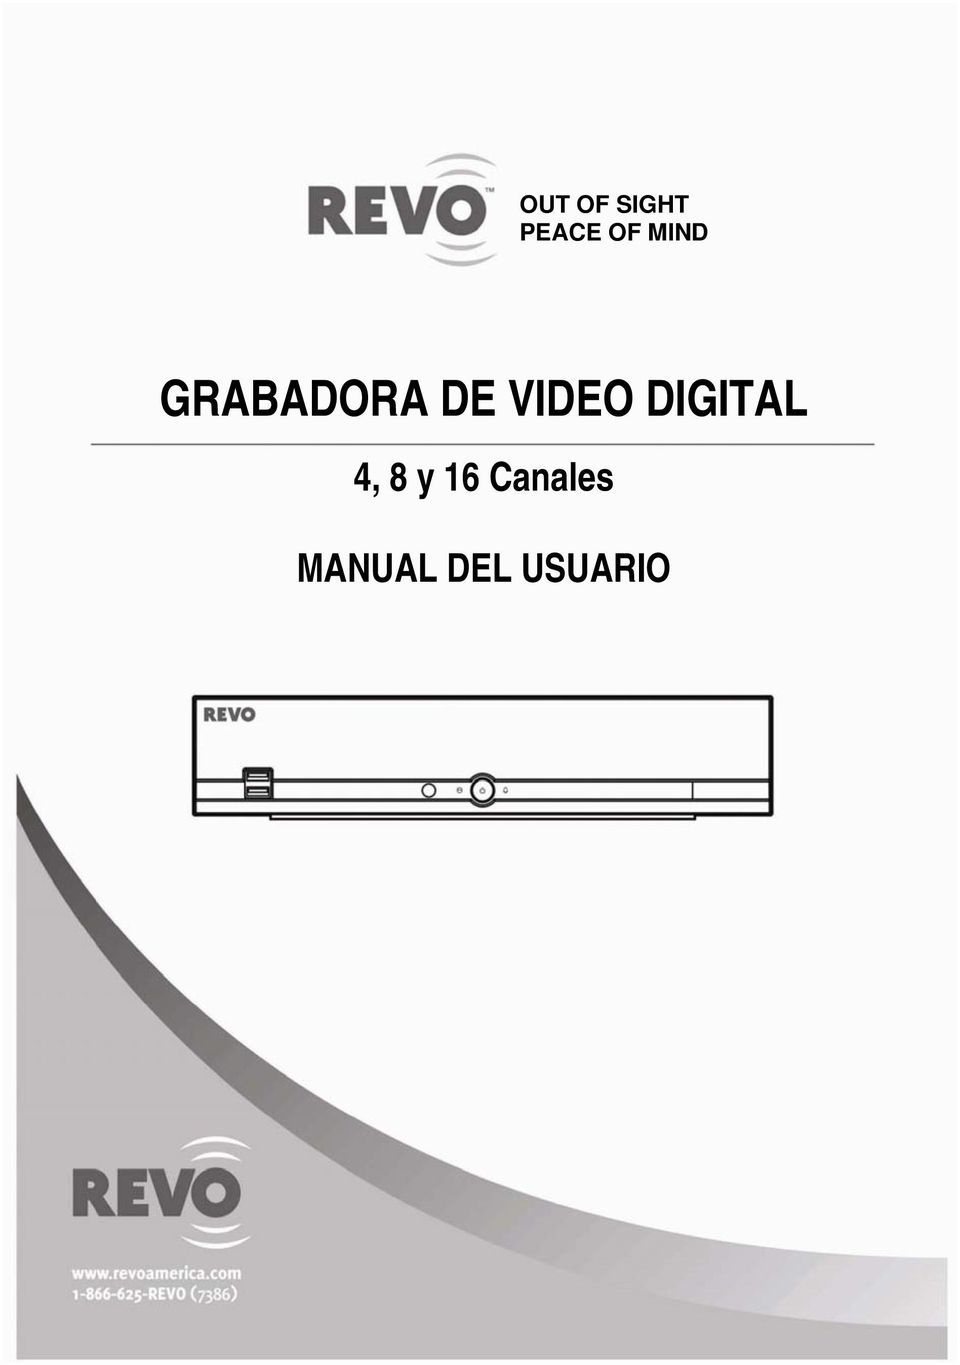 VIDEO DIGITAL 4, 8 y